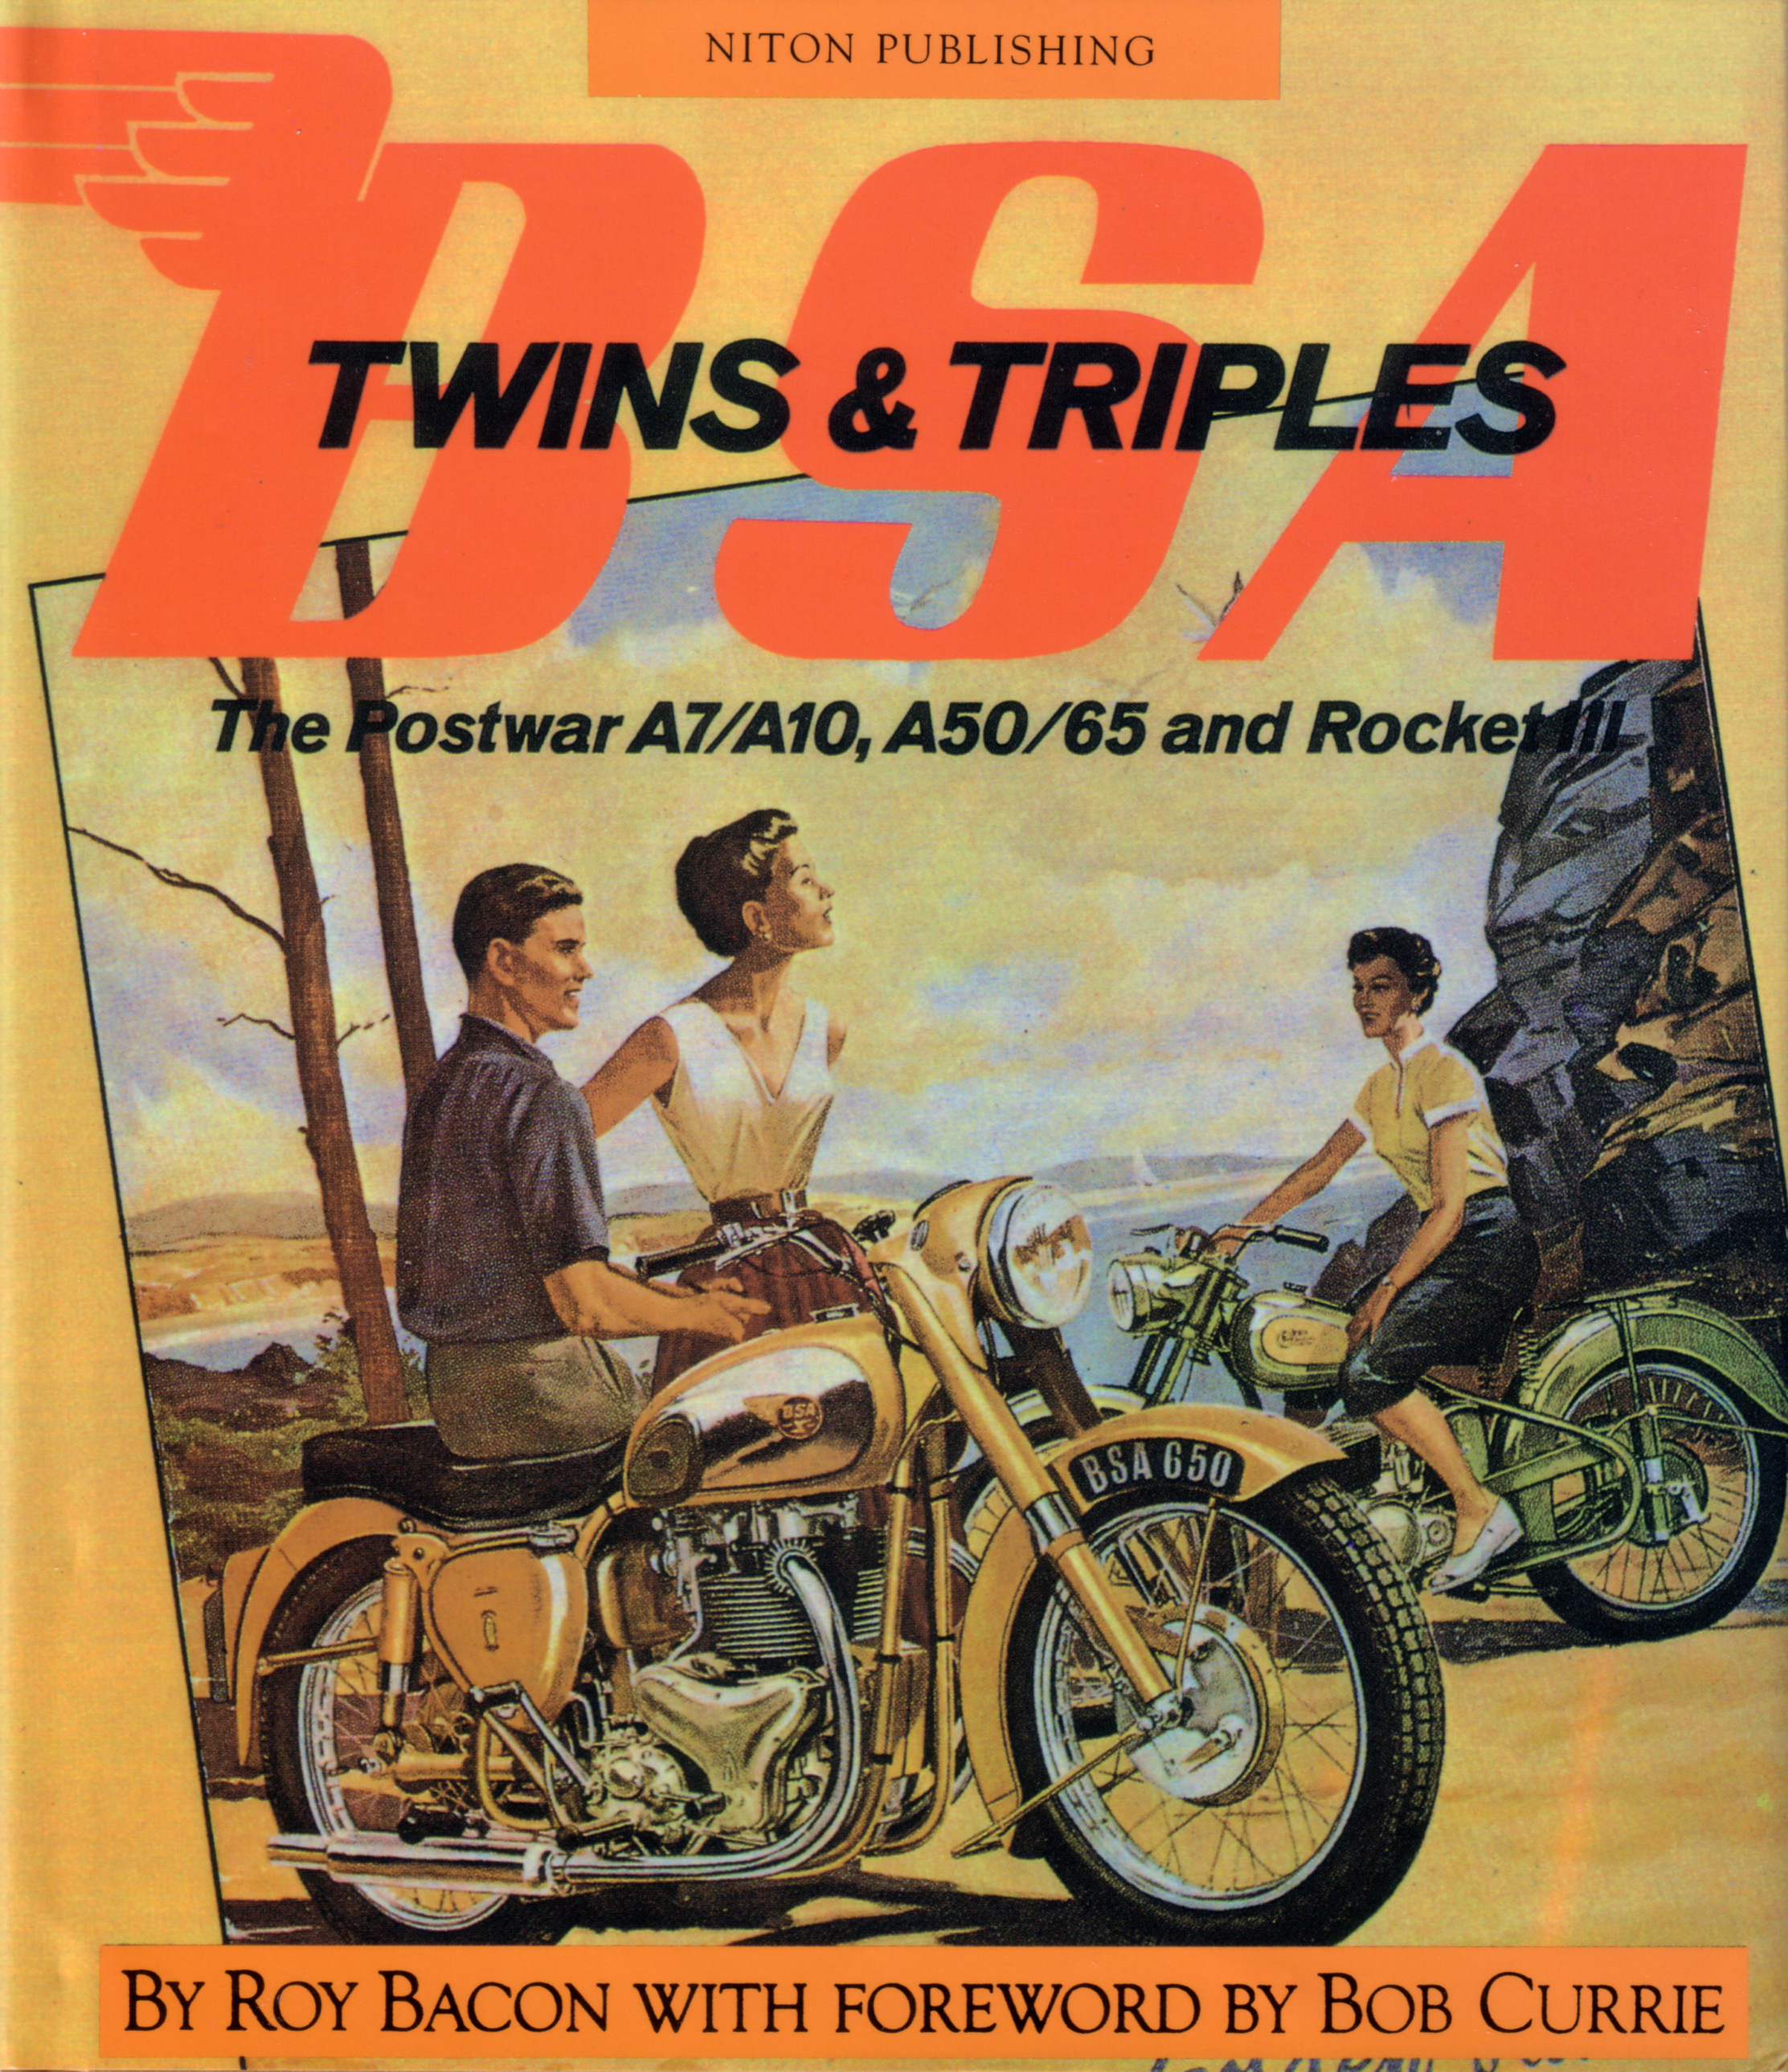 Books About BSA Motorcycles